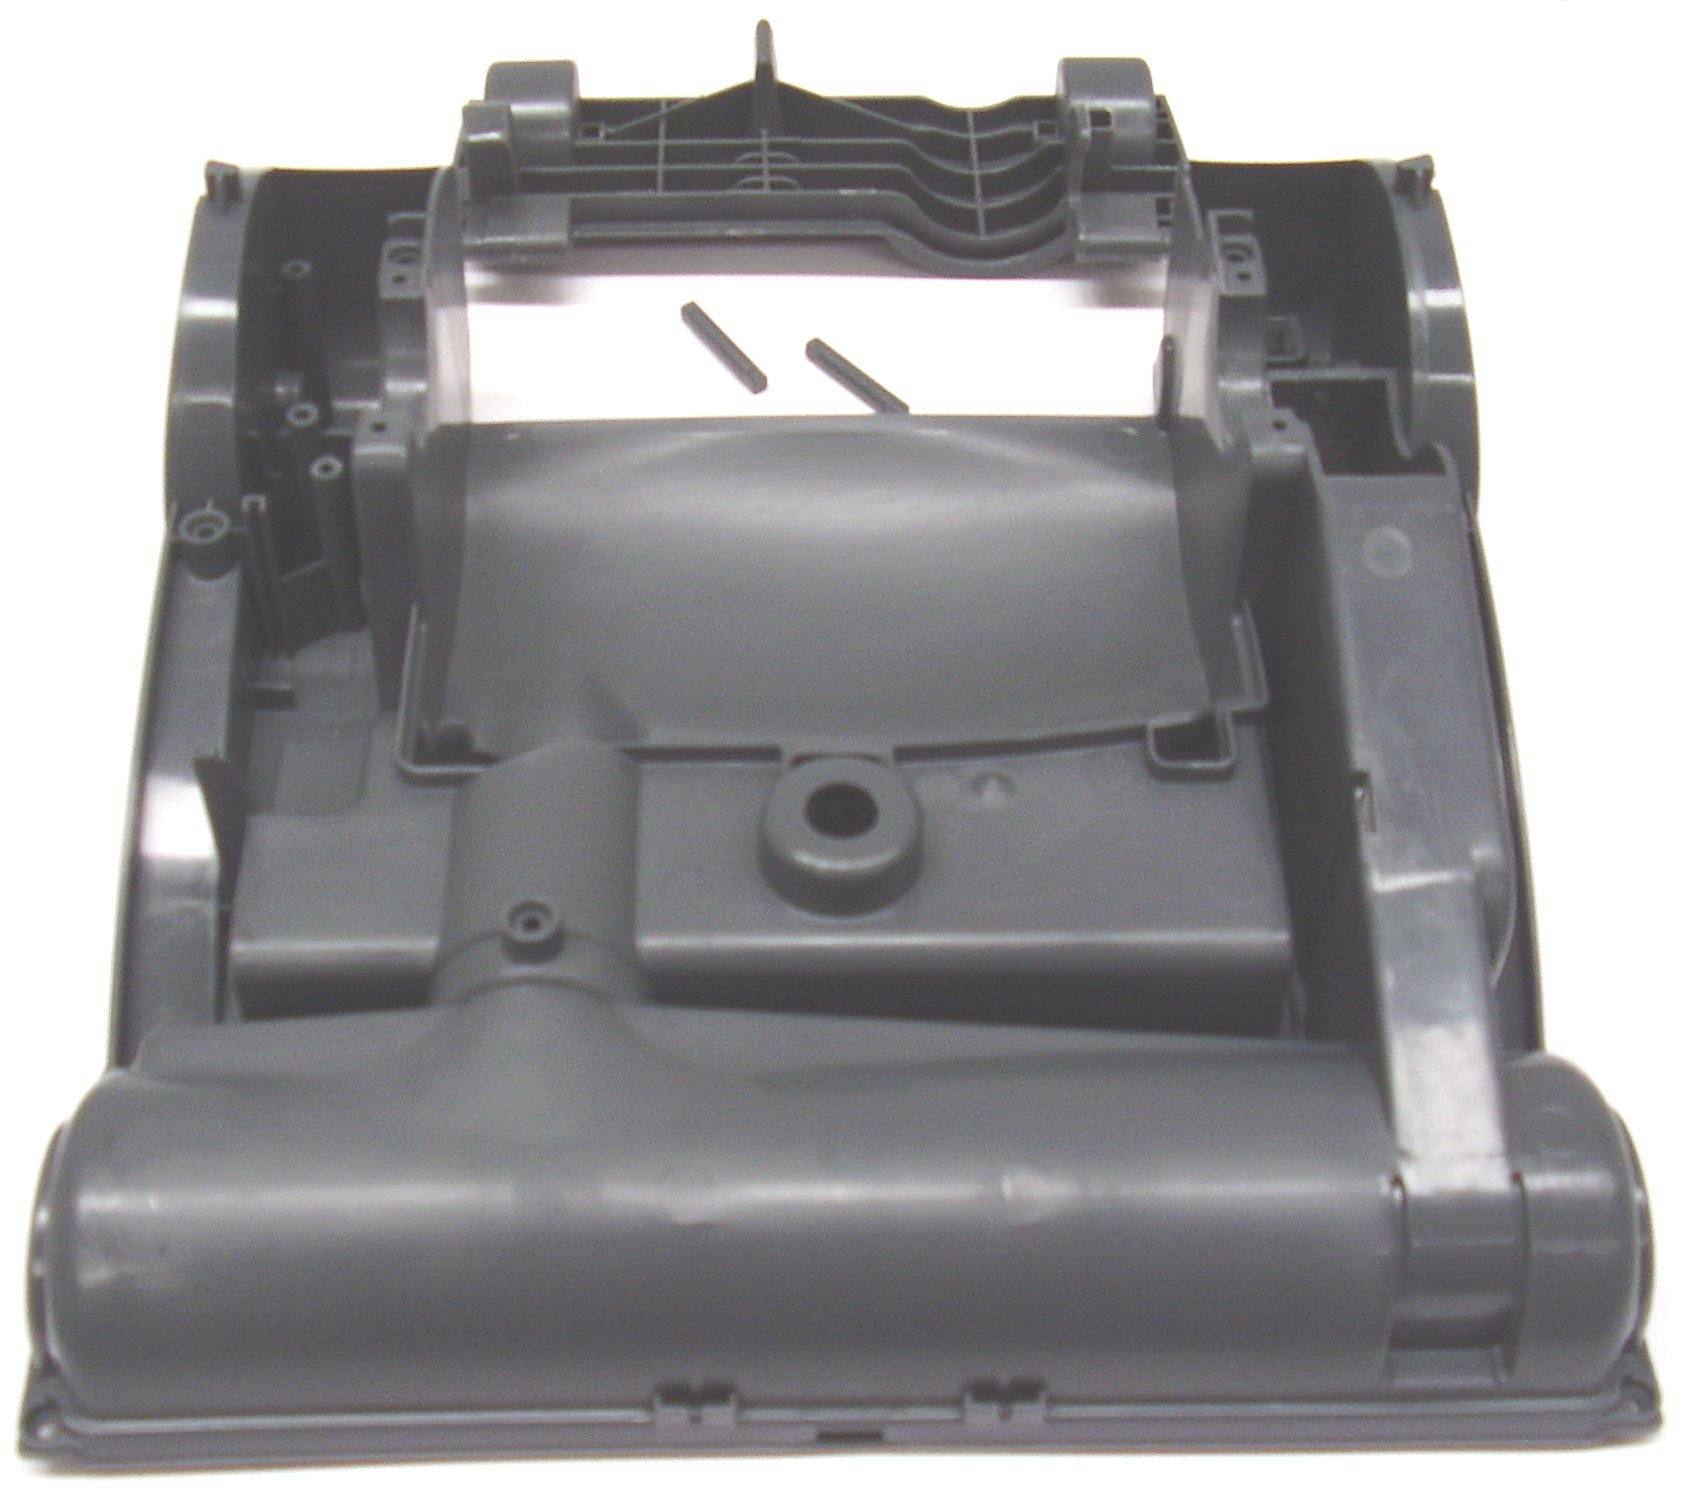 Description of CHASSIS KIT & HEIGHT ADJUSTING BOARD